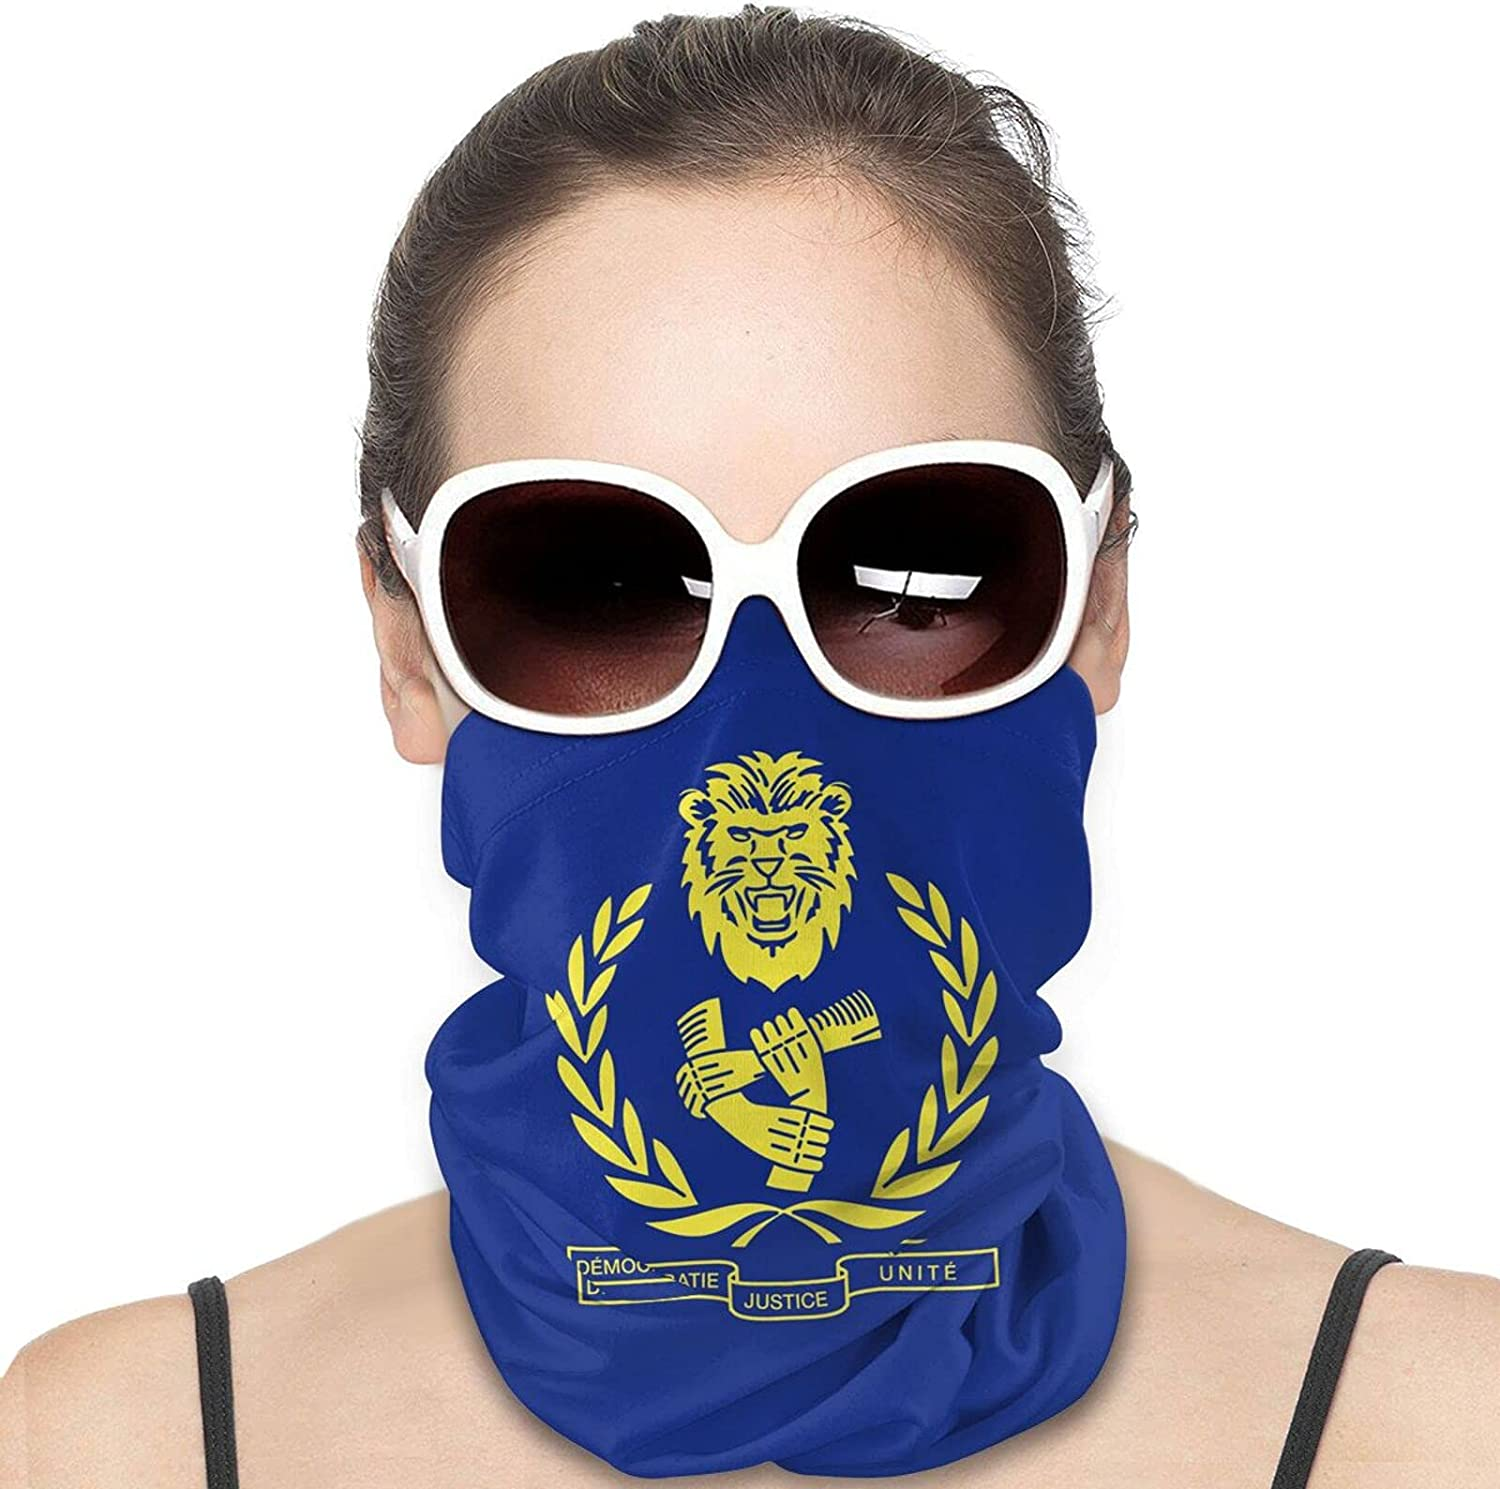 Emblem of the Democratic Republic of the Congo Round Neck Gaiter Bandnas Face Cover Uv Protection Prevent bask in Ice Scarf Headbands Perfect for Motorcycle Cycling Running Festival Raves Outdoors